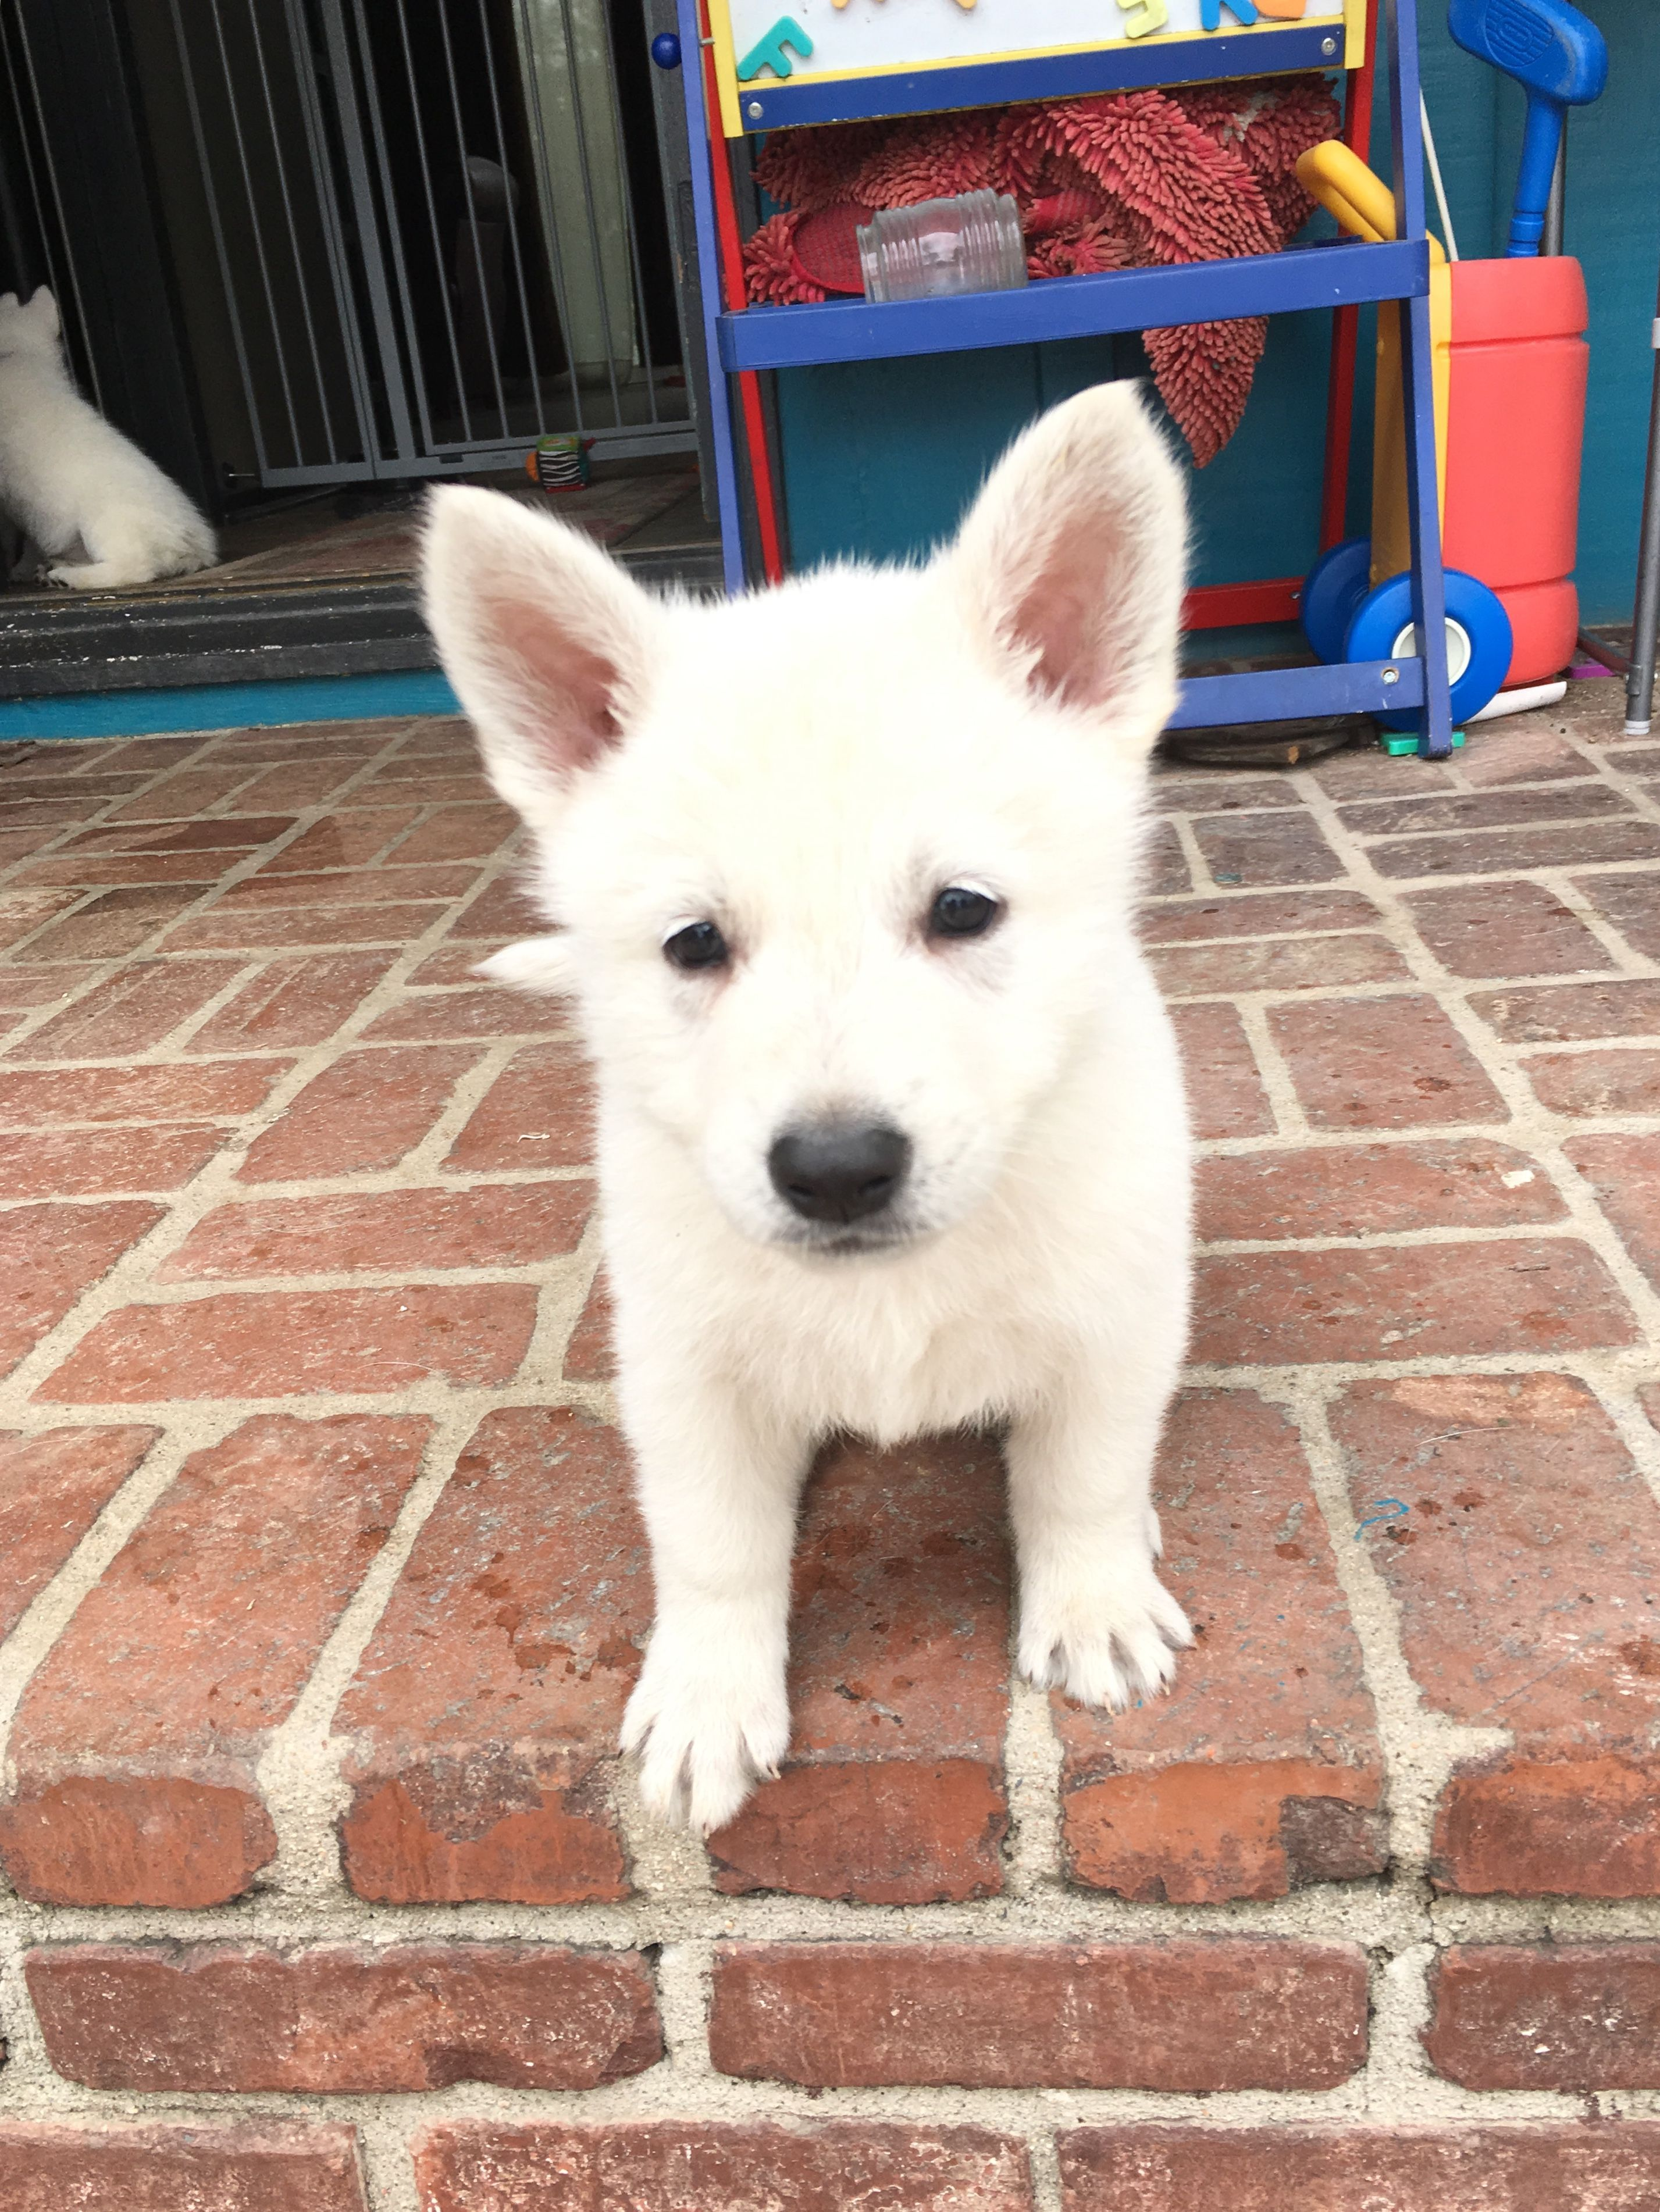 Yellow Girl A Ukc White Shepherd Puppy For Sale In Fullerton California Find Cute White Shepherd Puppies And In 2020 Puppies For Sale Cute Animals Puppies Puppies